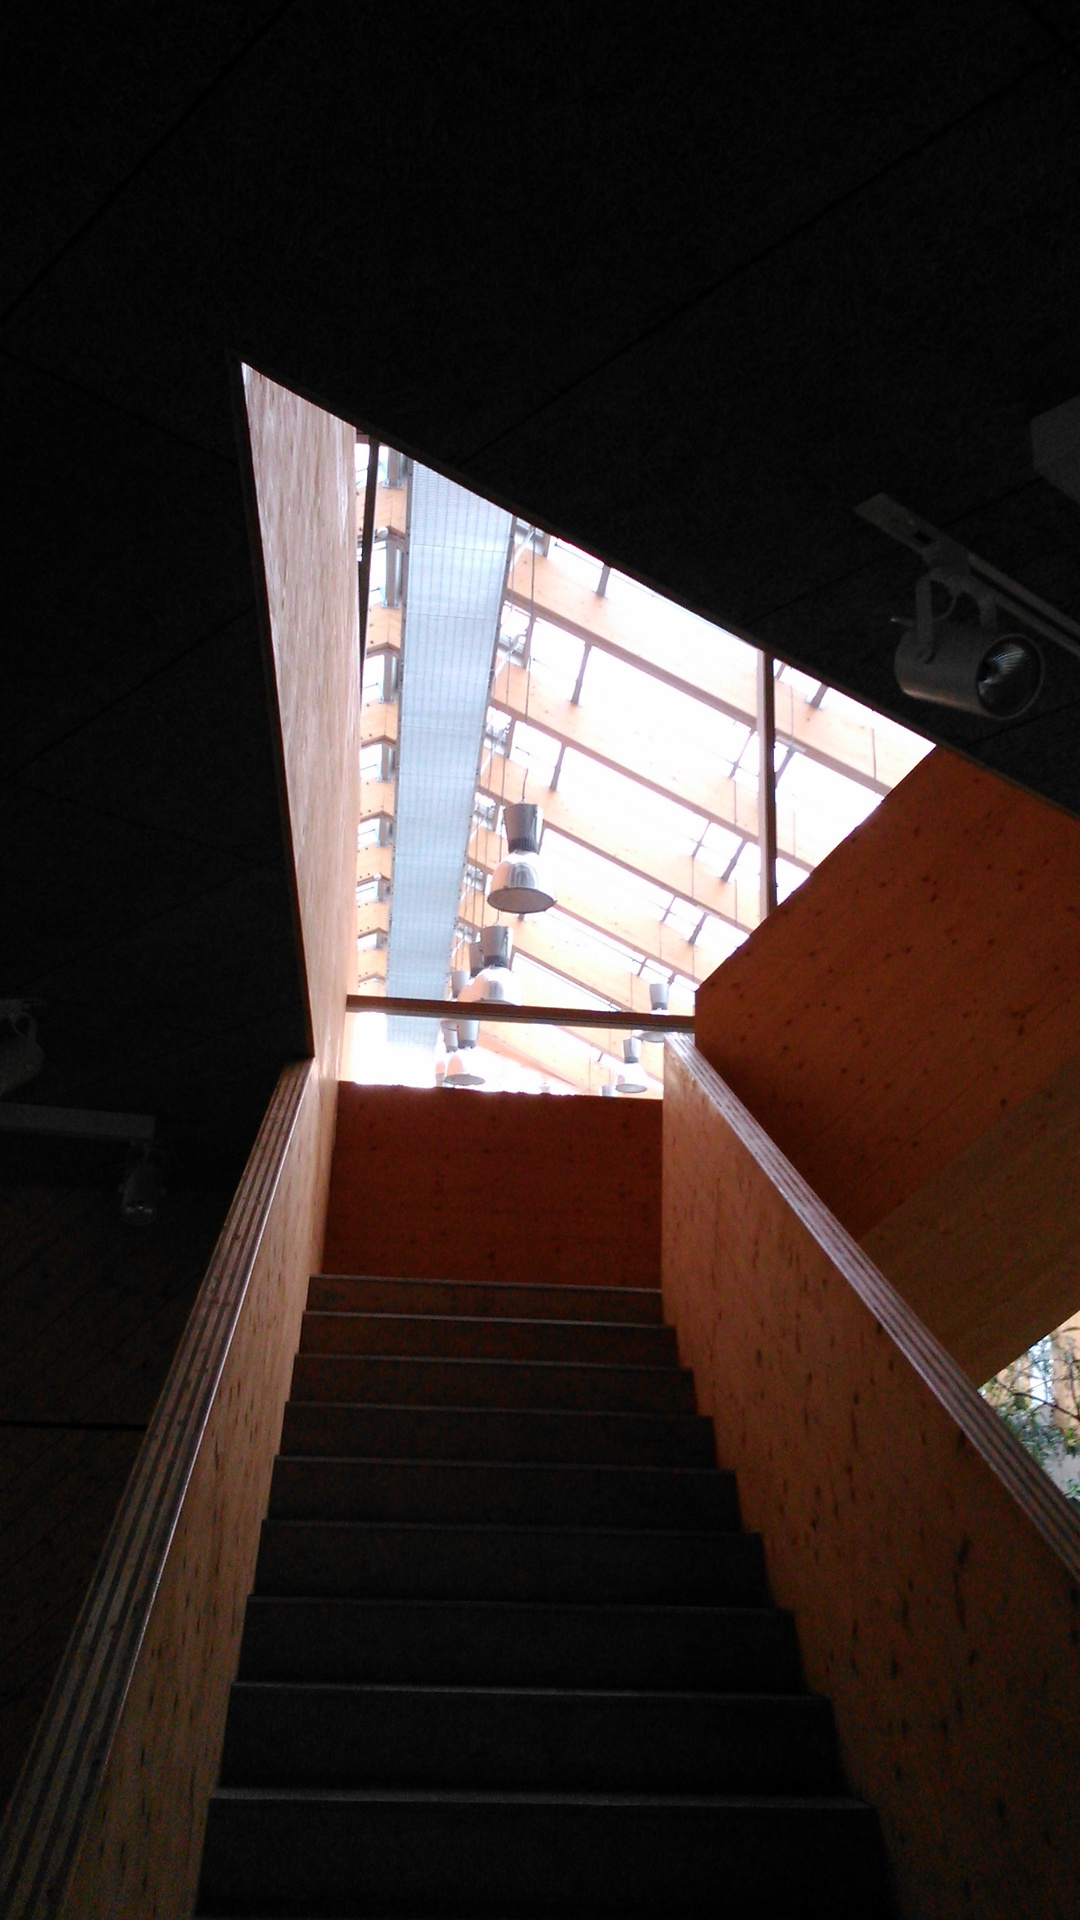 Attic Stairs Window View iPhone 6 Plus HD Wallpaper